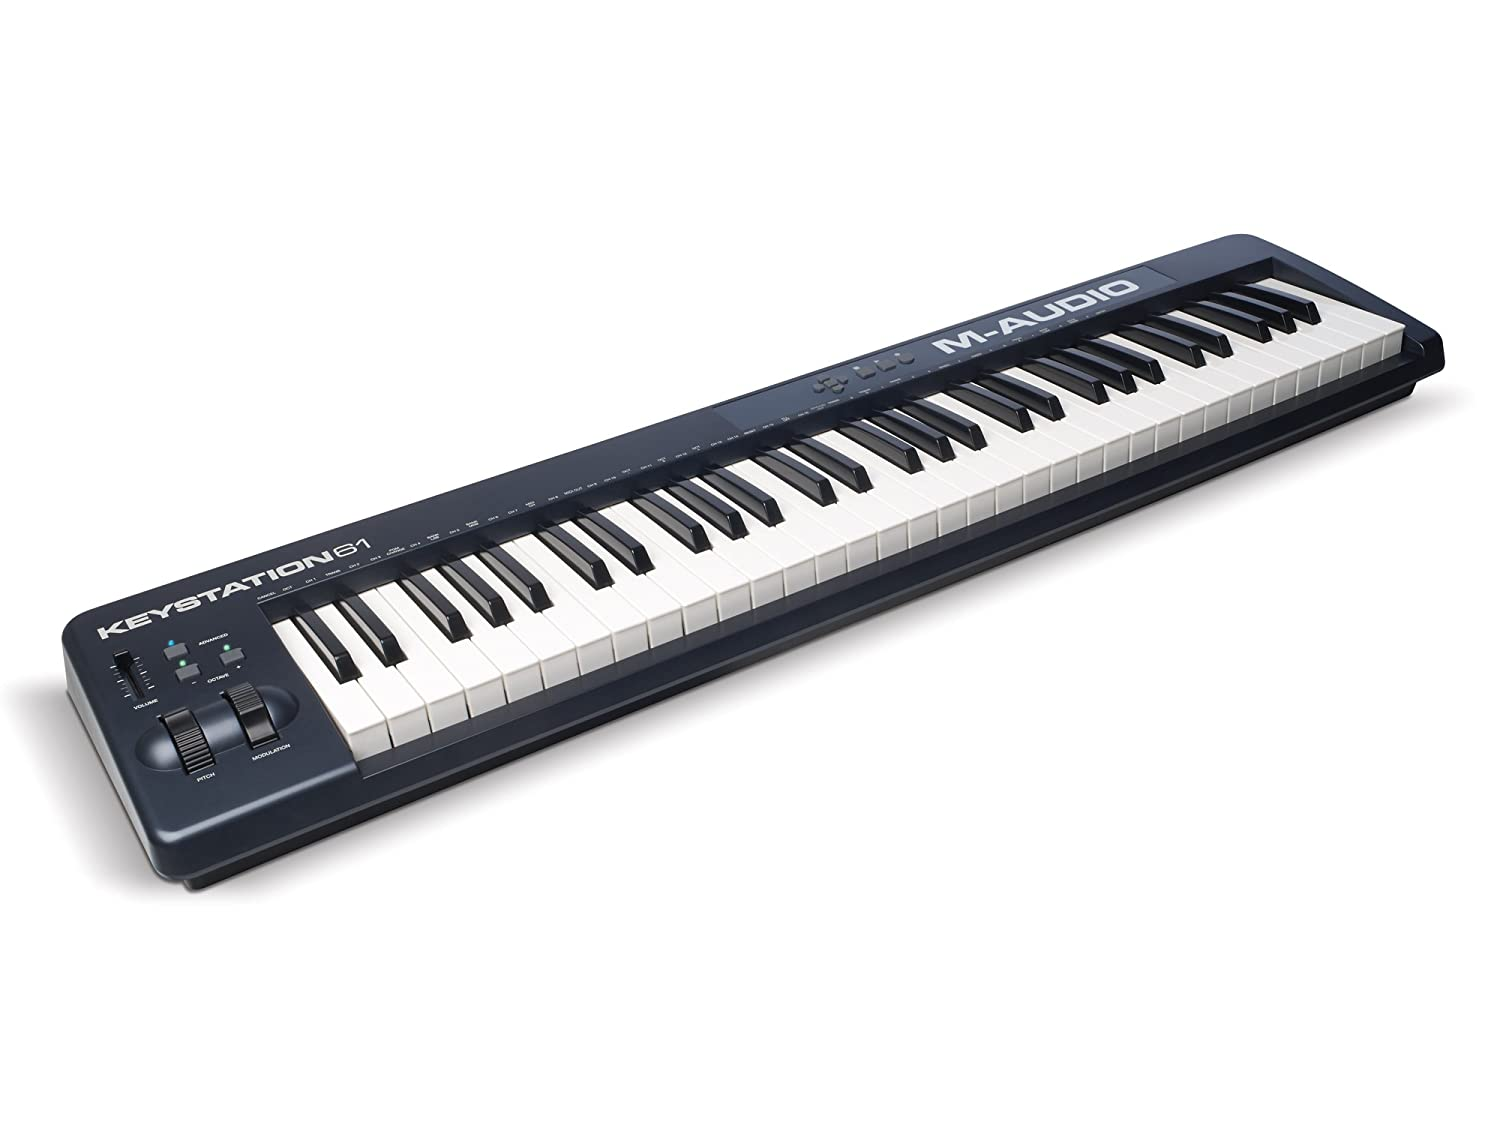 Best MIDI Keyboard Controller for Beginners